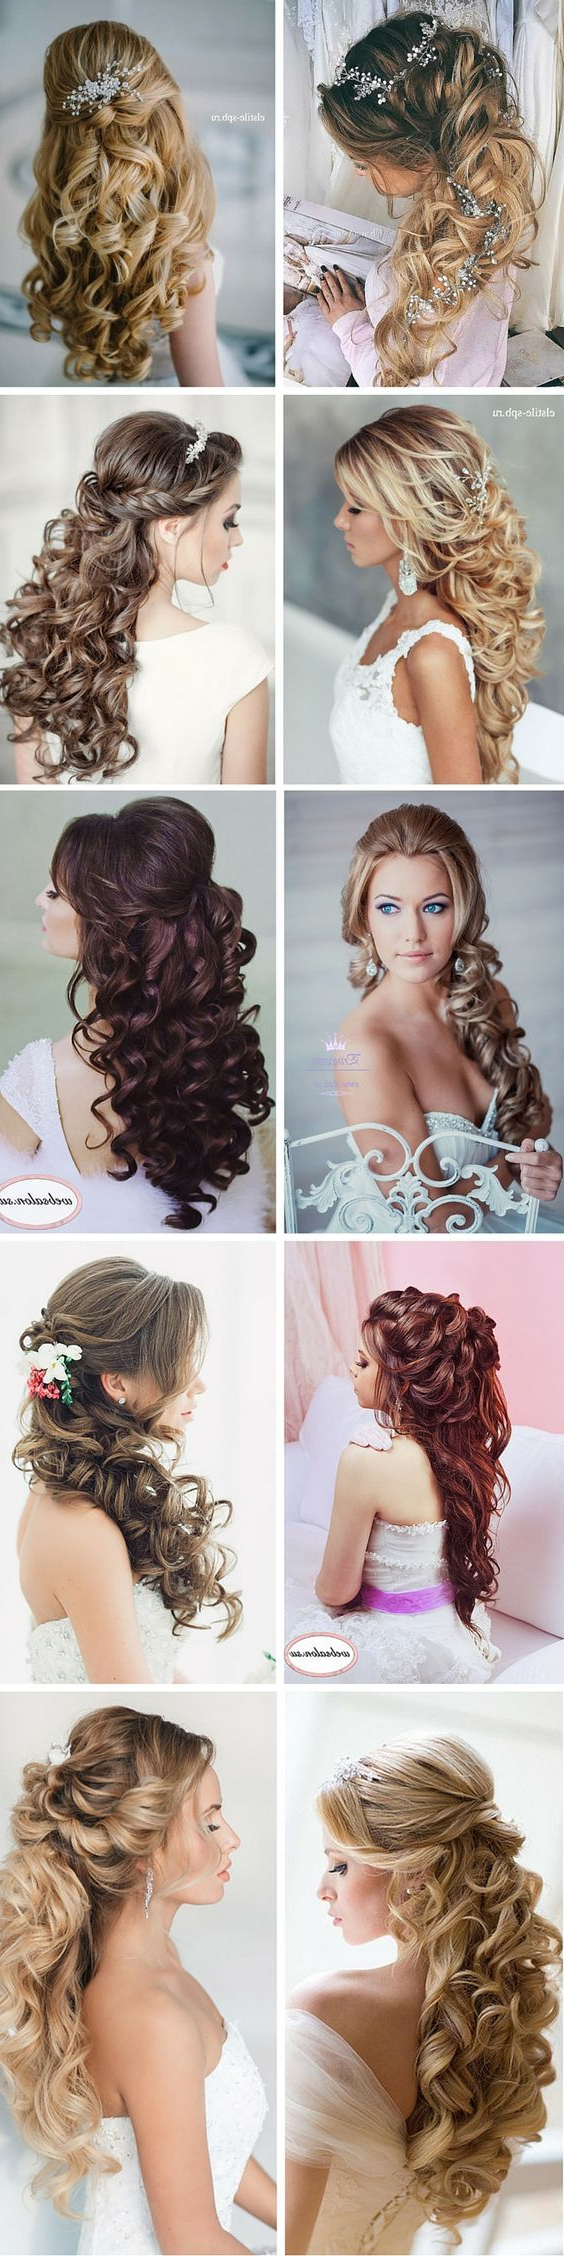 250 Bridal Wedding Hairstyles For Long Hair That Will Inspire With Regard To Current Elegant Curled Prom Hairstyles (View 9 of 20)